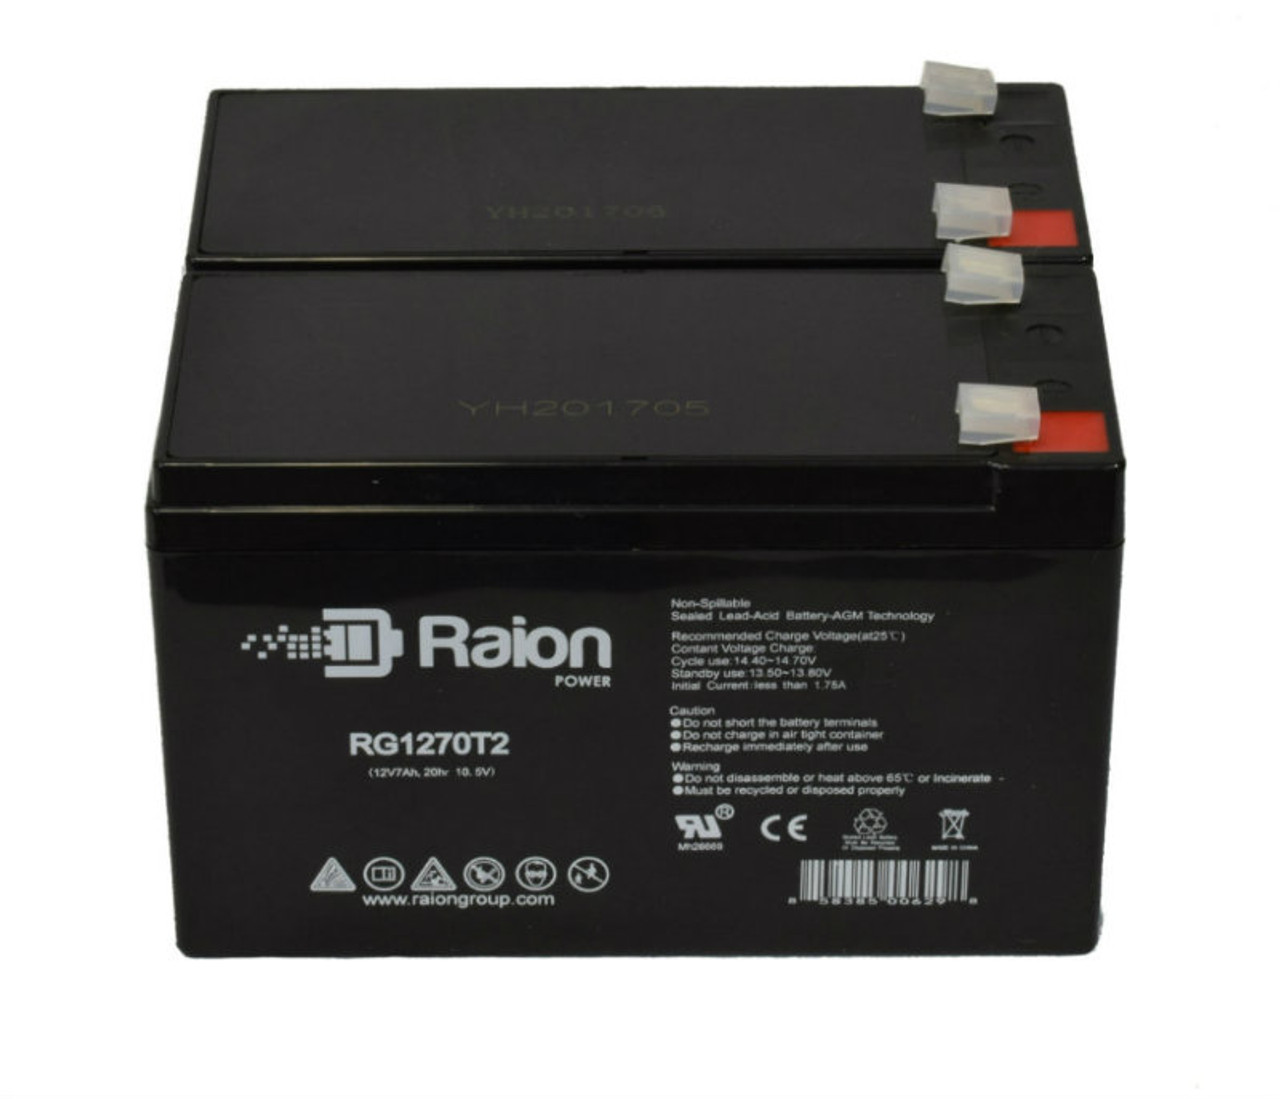 Raion Power RG1270T1 Replacement Battery Pack For Guardian DG12-7F - (2 Pack)